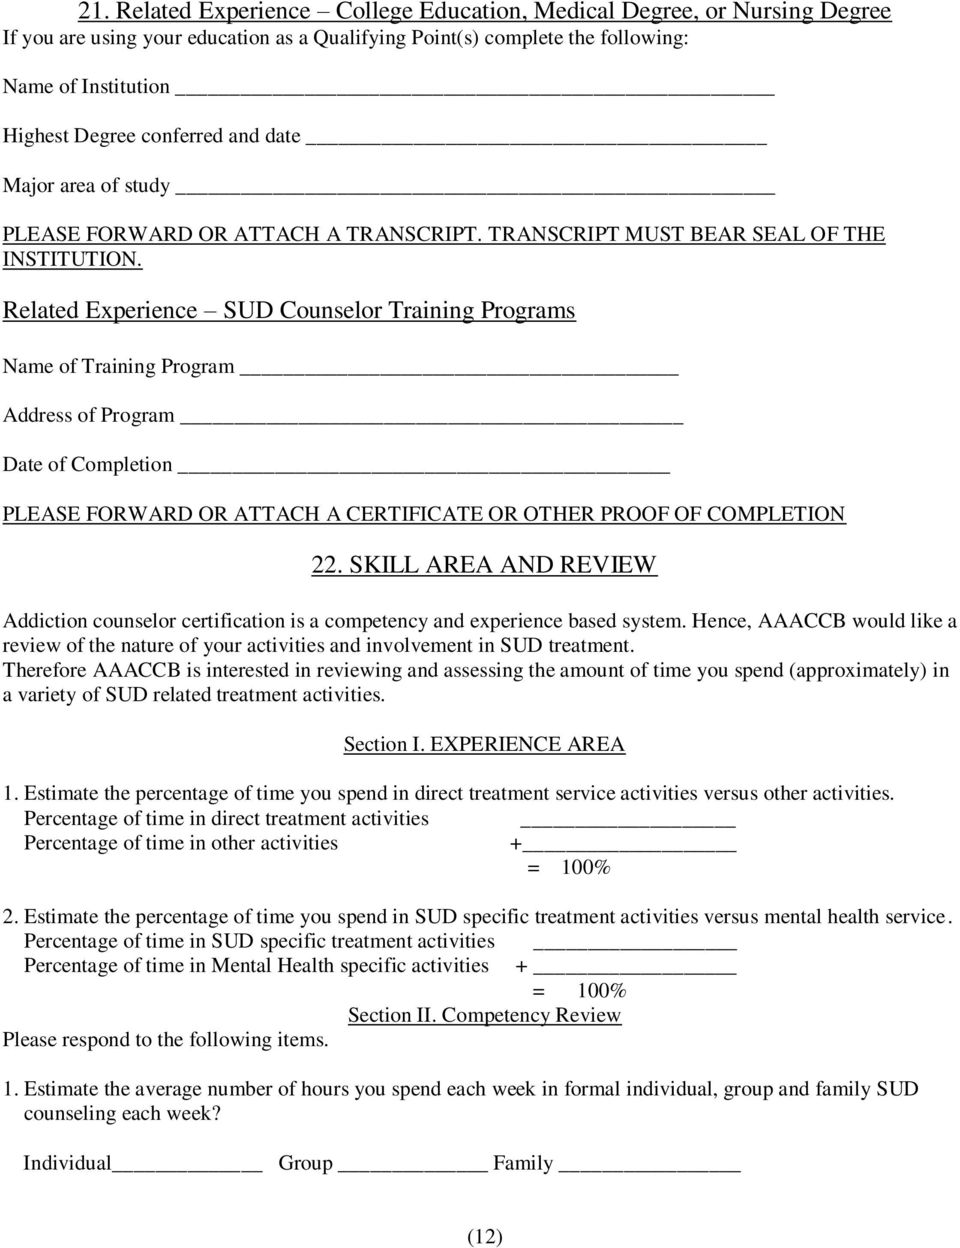 Related Experience SUD Counselor Training Programs Name of Training Program _ Address of Program Date of Completion _ PLEASE FORWARD OR ATTACH A CERTIFICATE OR OTHER PROOF OF COMPLETION 22.